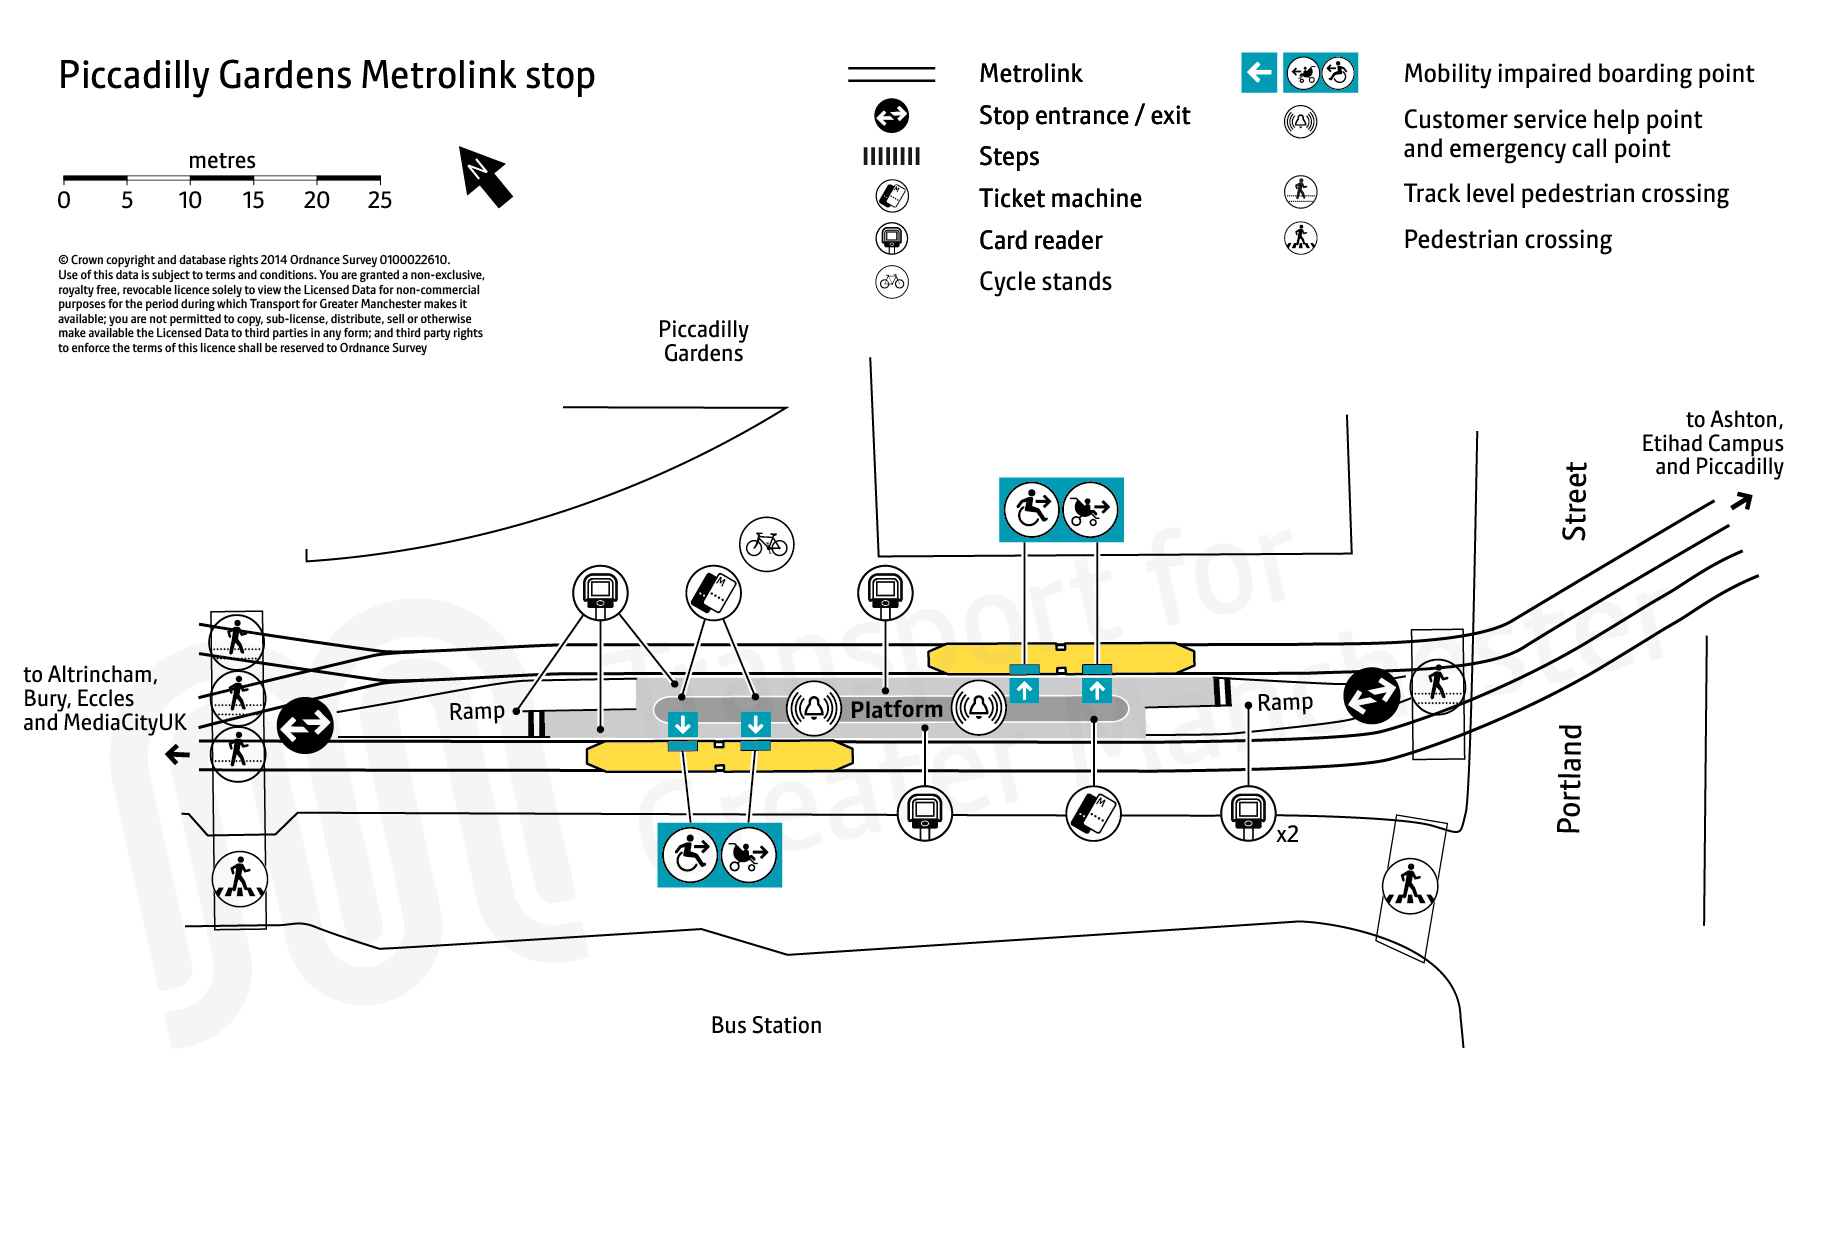 Stop map for Piccadilly Gardens tram stop